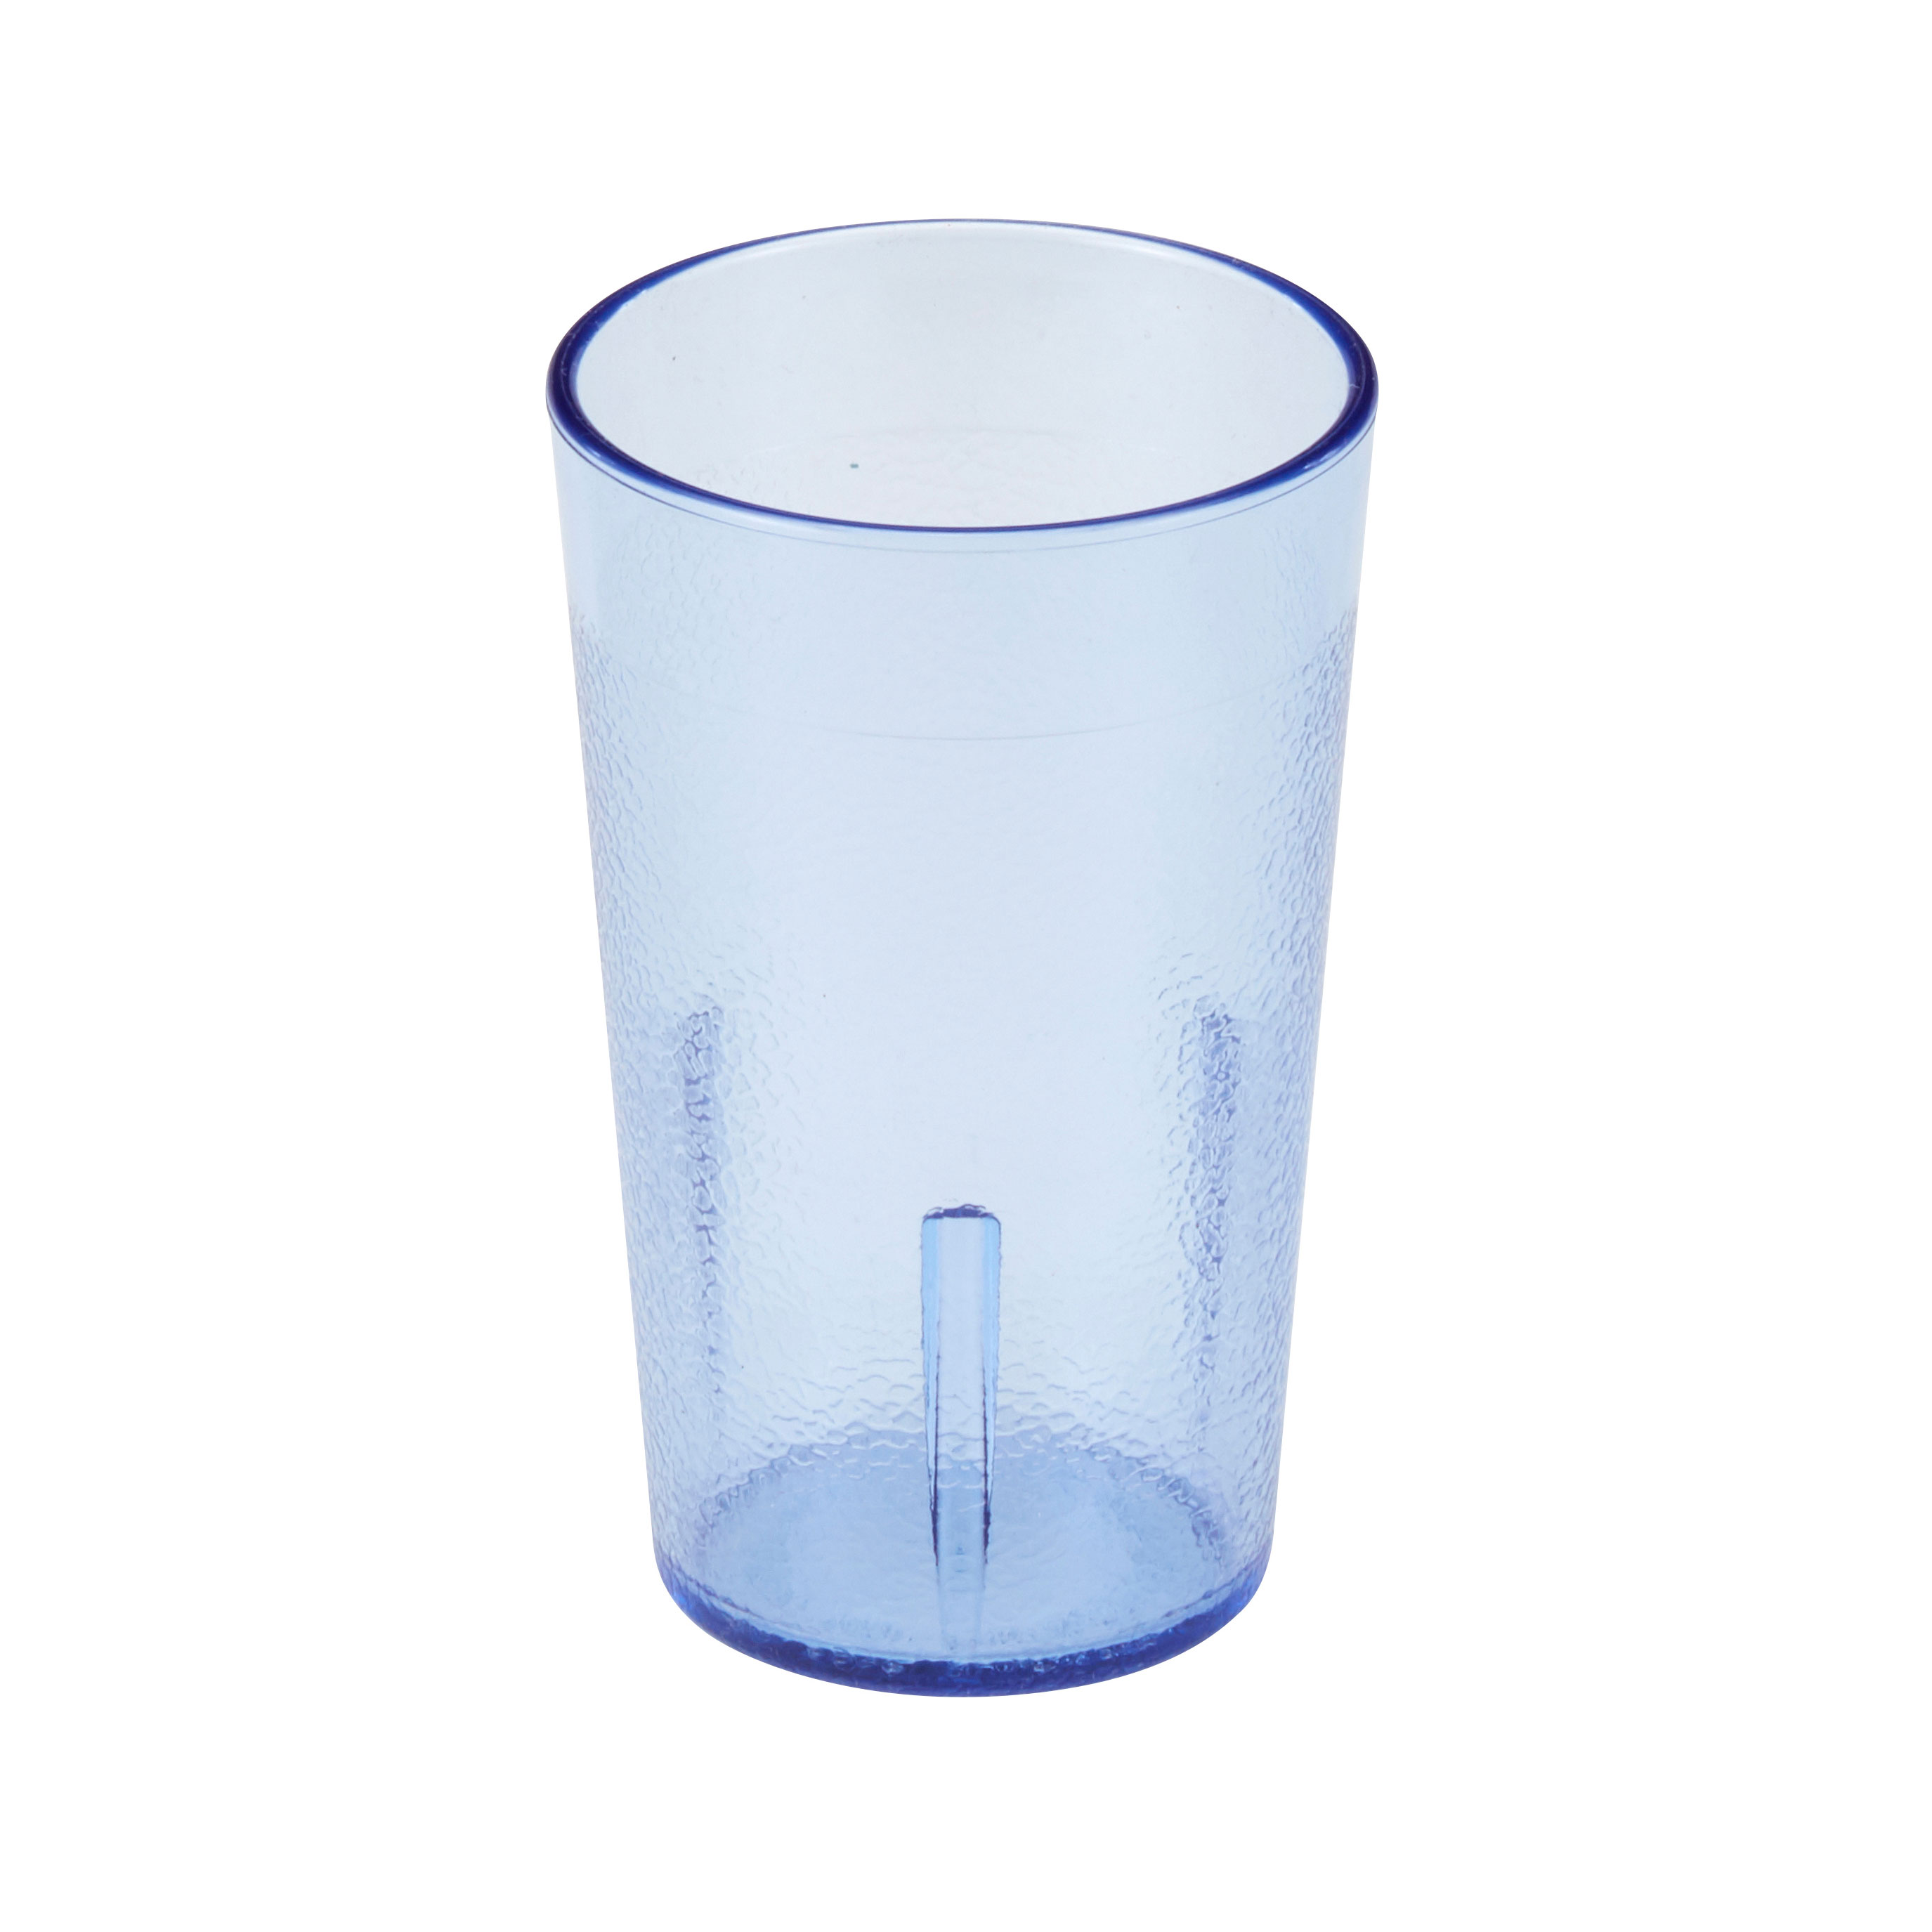 Cambro 950P401 serving/drinking glasses